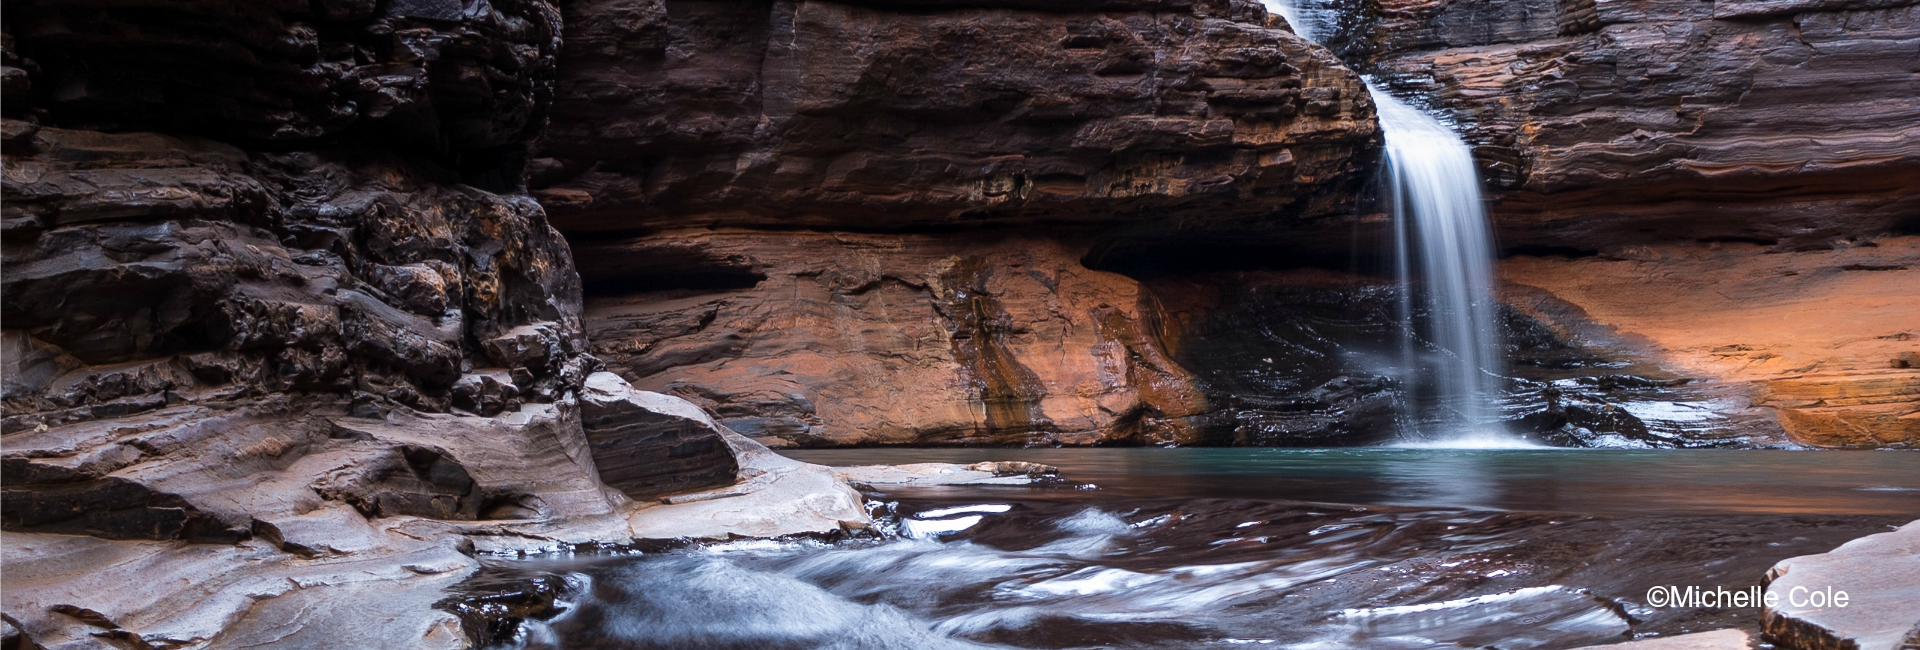 Regans Pool, Karijini National Park, the Pilbara - image by Michelle Coleini